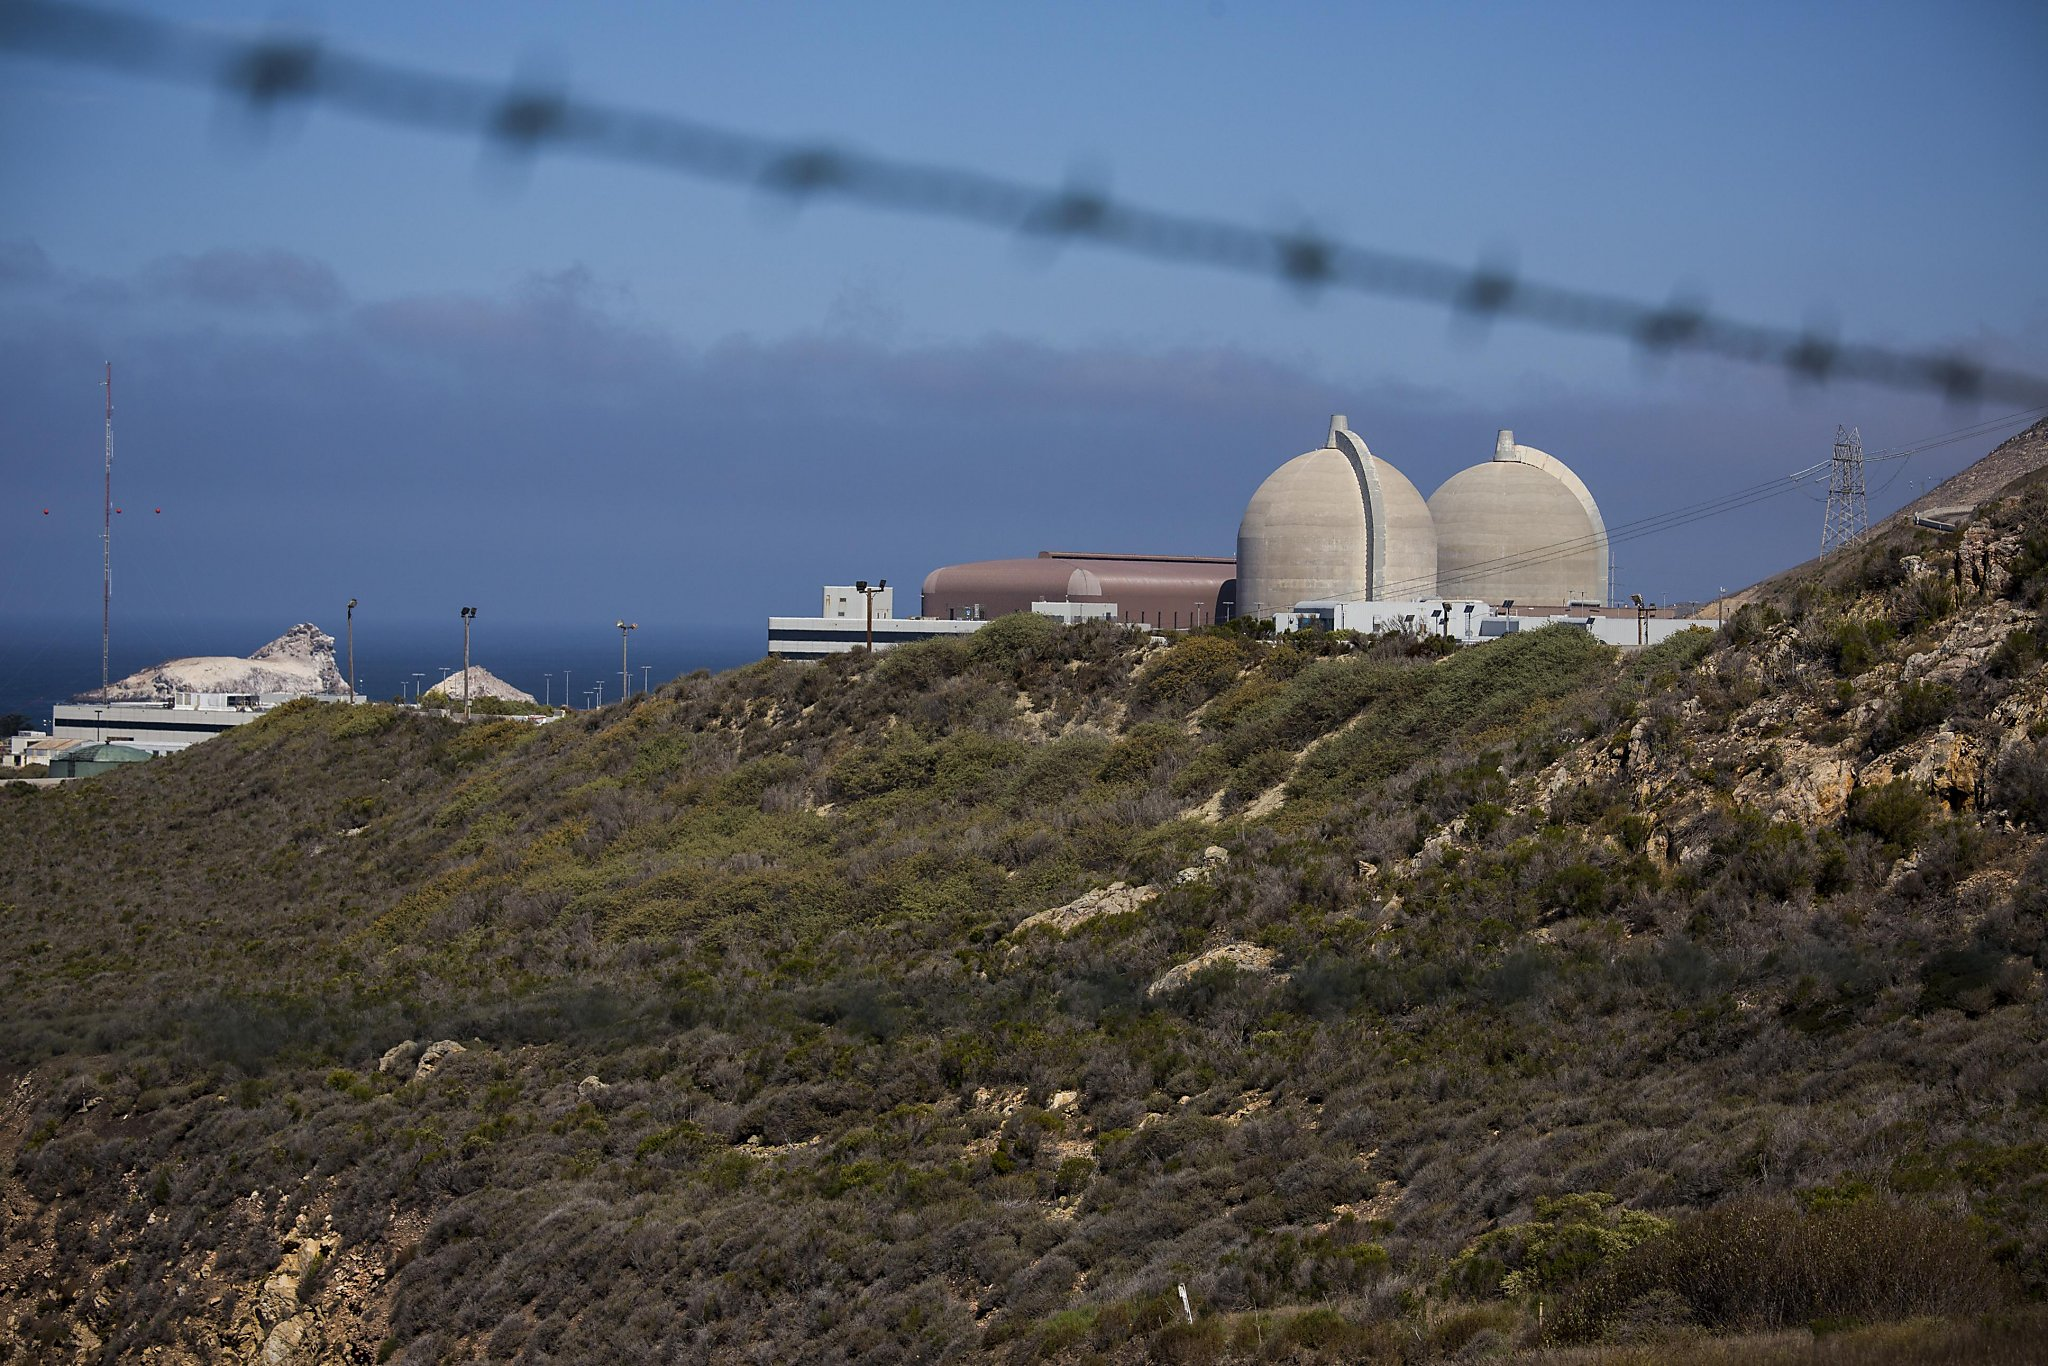 End of an atomic era: PG&E to close Diablo Canyon nuclear plant